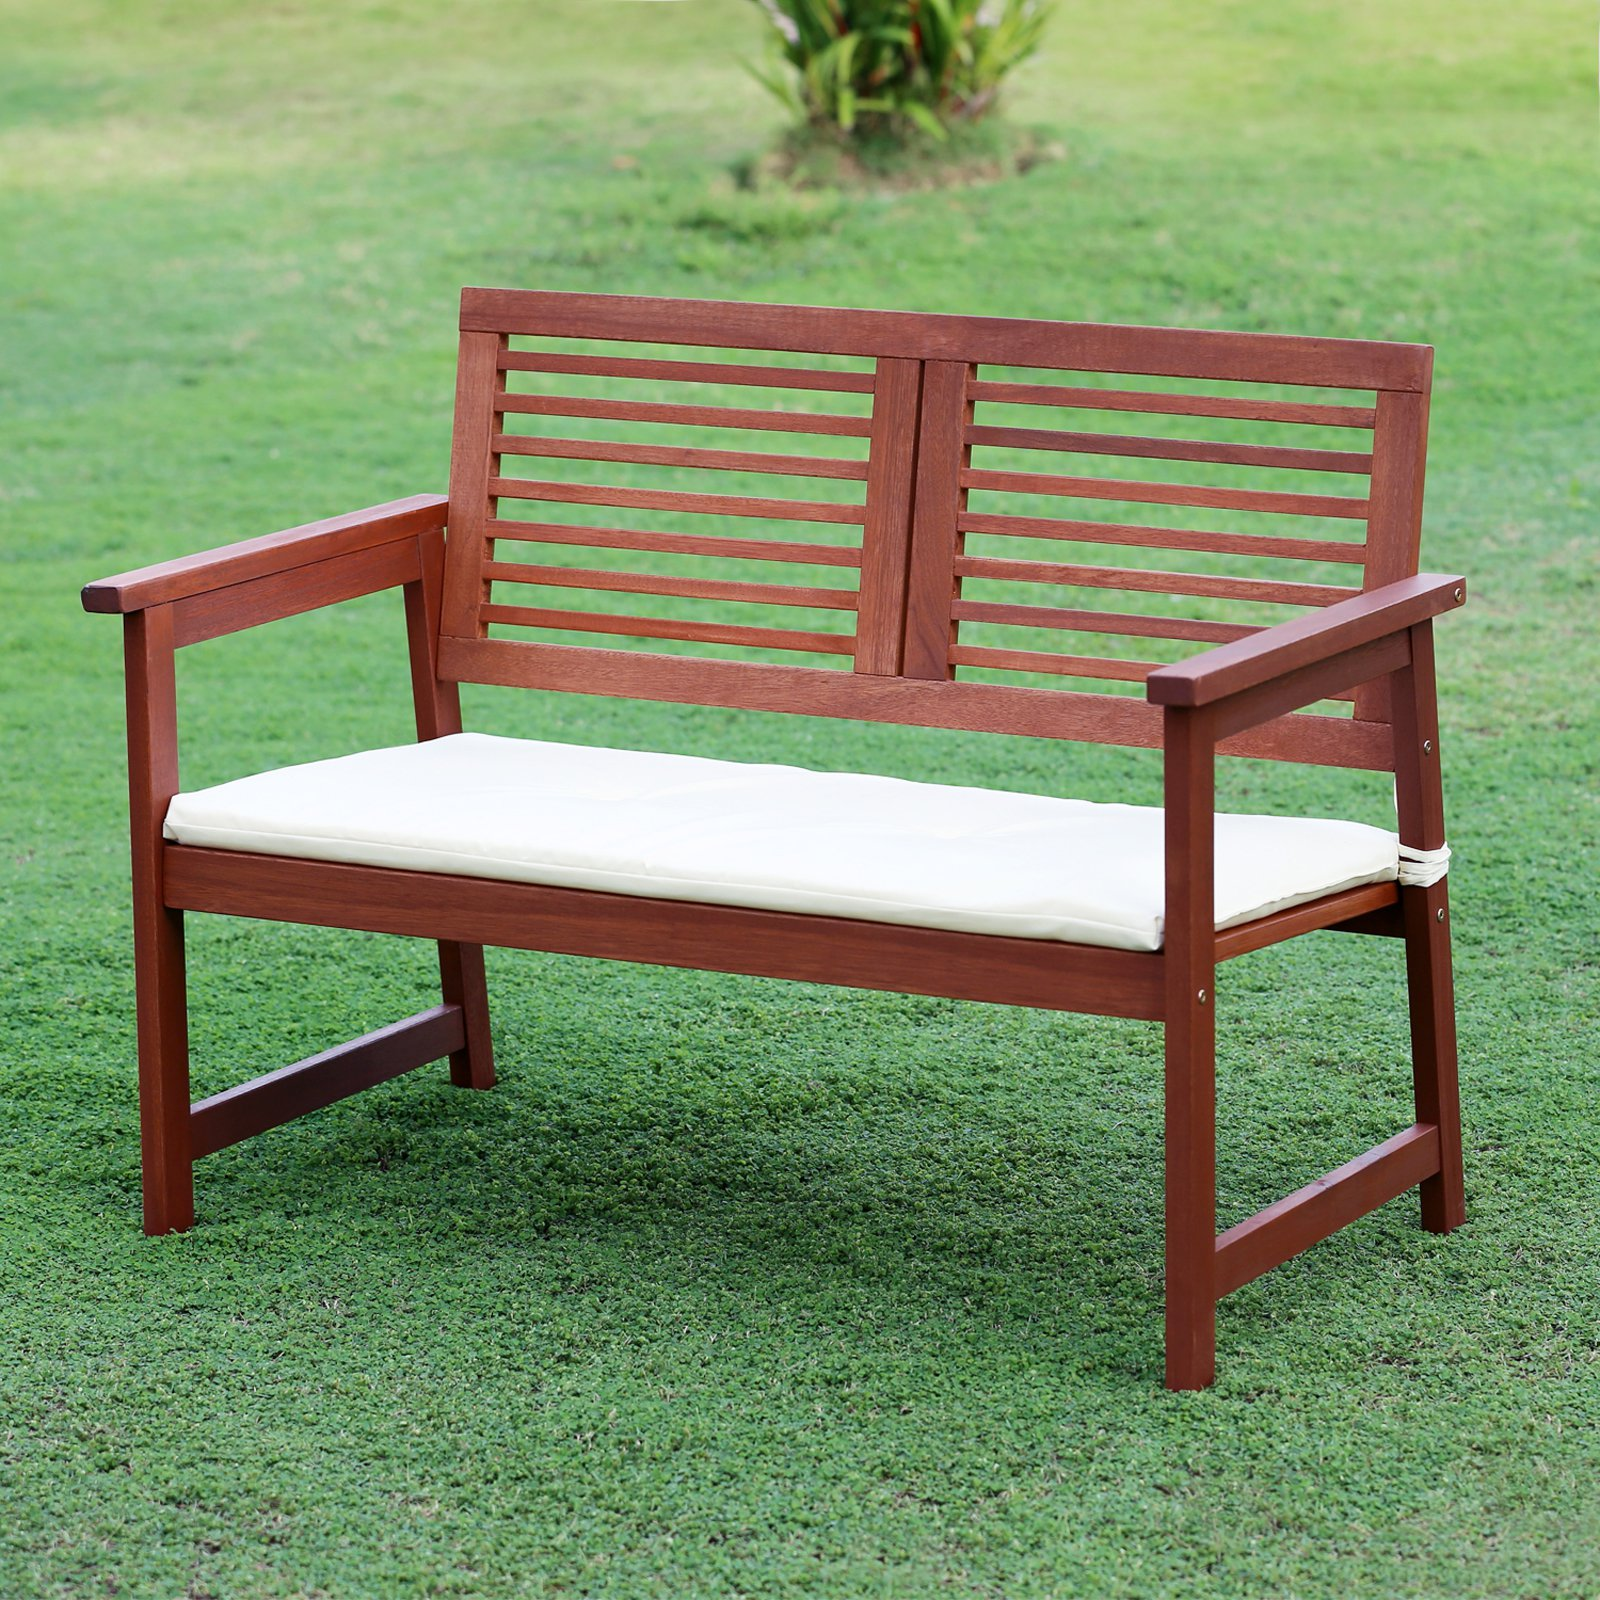 Furinno Tioman Teak Hardwood Outdoor Bench with Cushion by Furinno